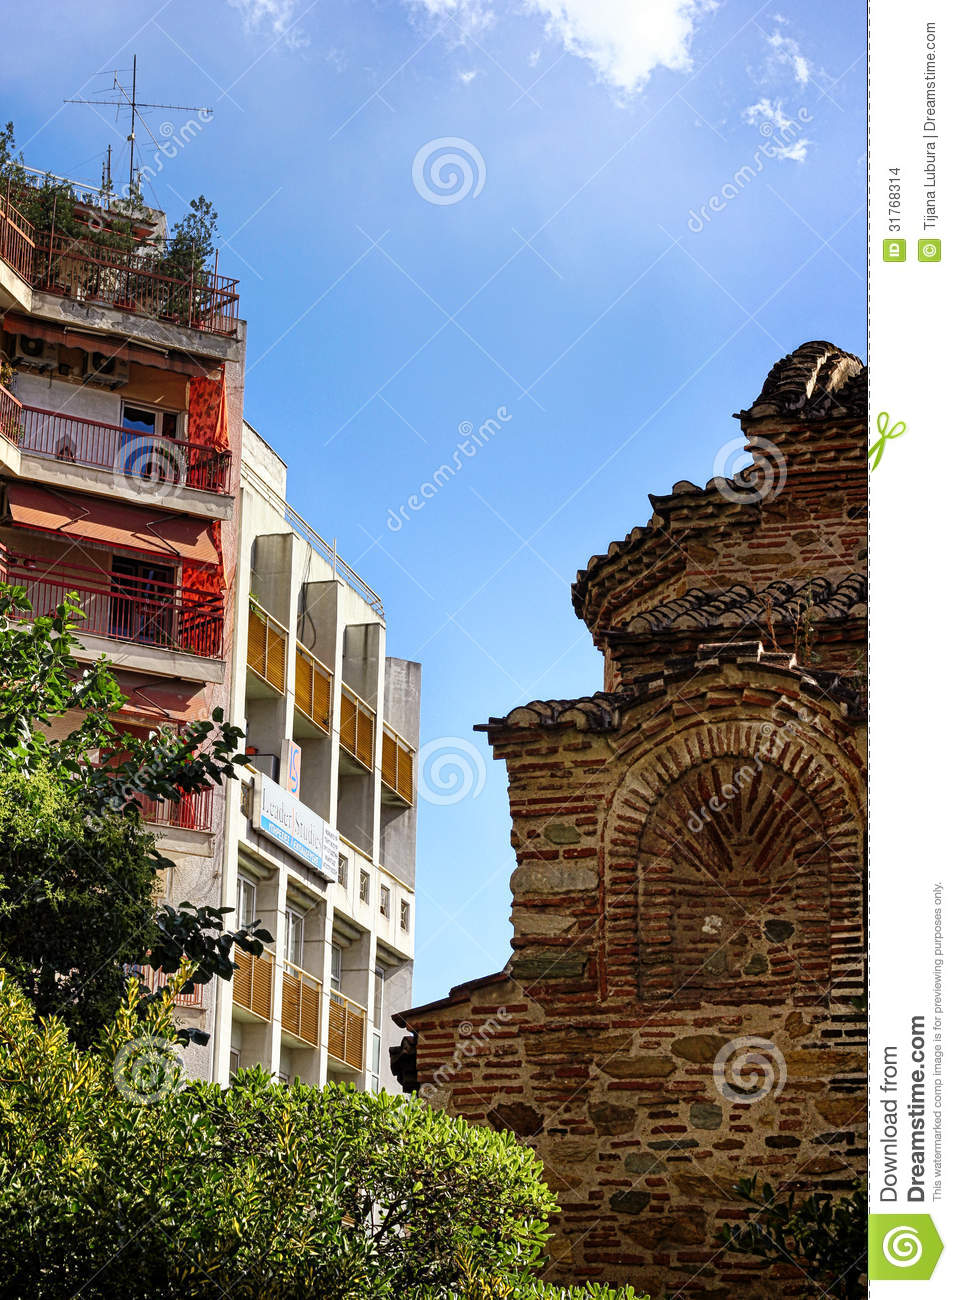 Architecture in thessaloniki stock images image 31768314 for Architecture rest